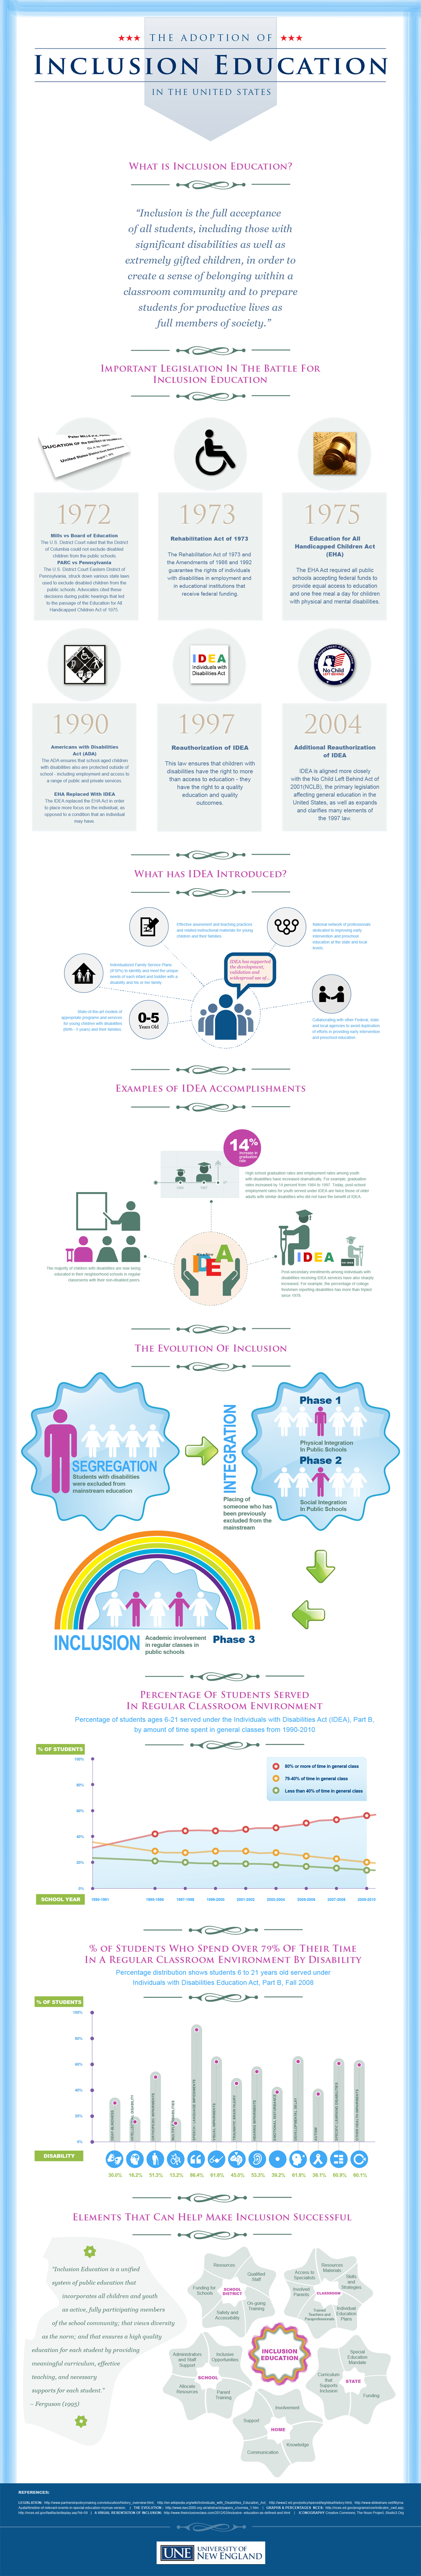 The Adoption of Inclusion Education in the United States - Infographic